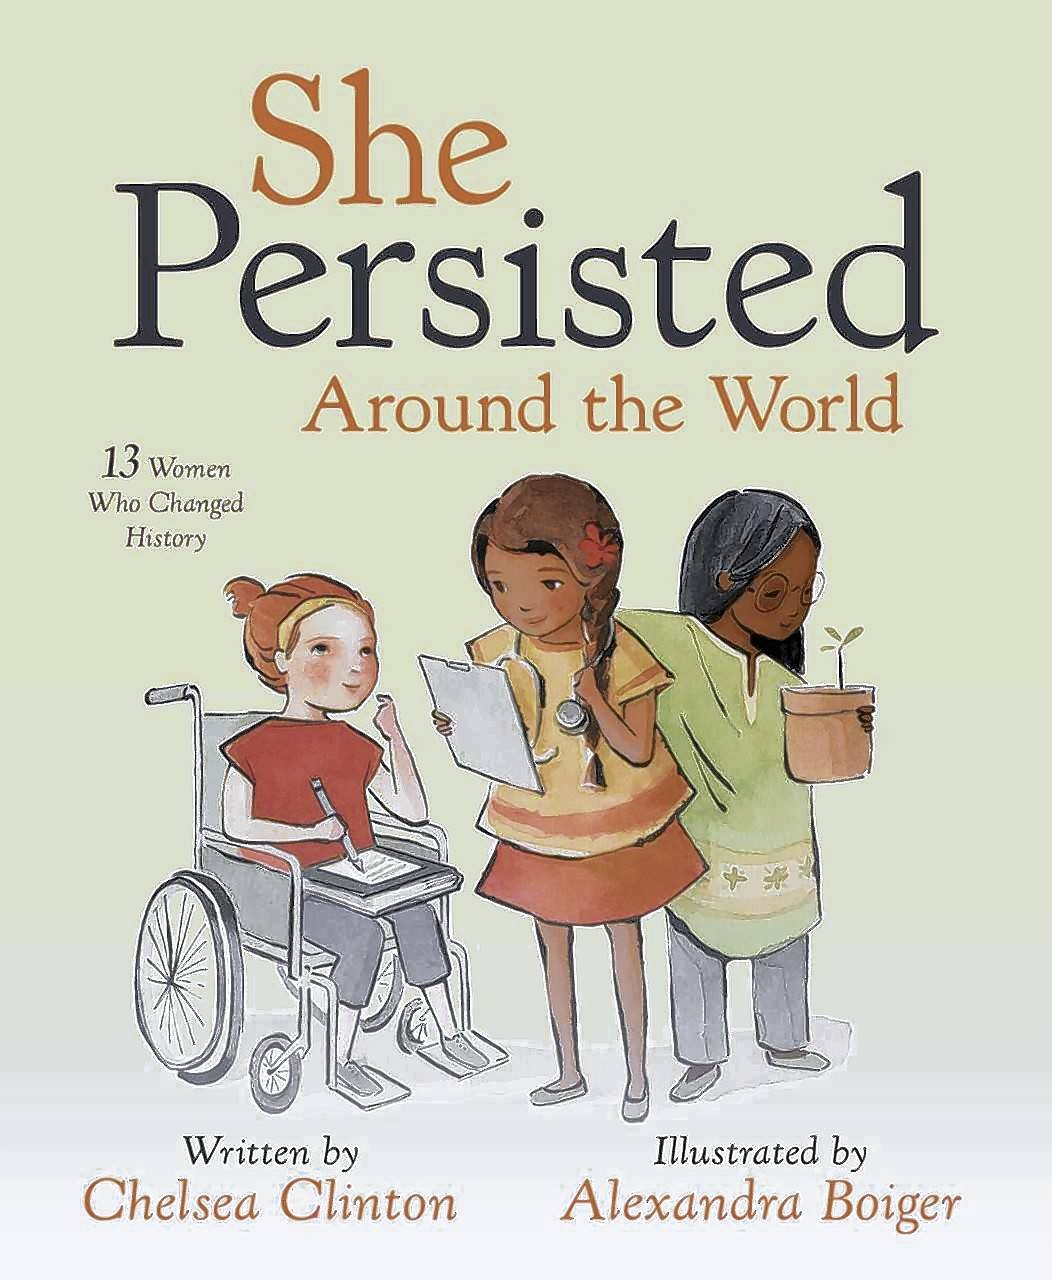 """She Persisted Around the World: 13 Women Who Changed History,"" by Chelsea Clinton, tells young readers of women who have shaped history. Clinton plans to stop by Anderson's Bookshop at 7 p.m. Friday, March 9 in La Grange to sign copies of the new title."